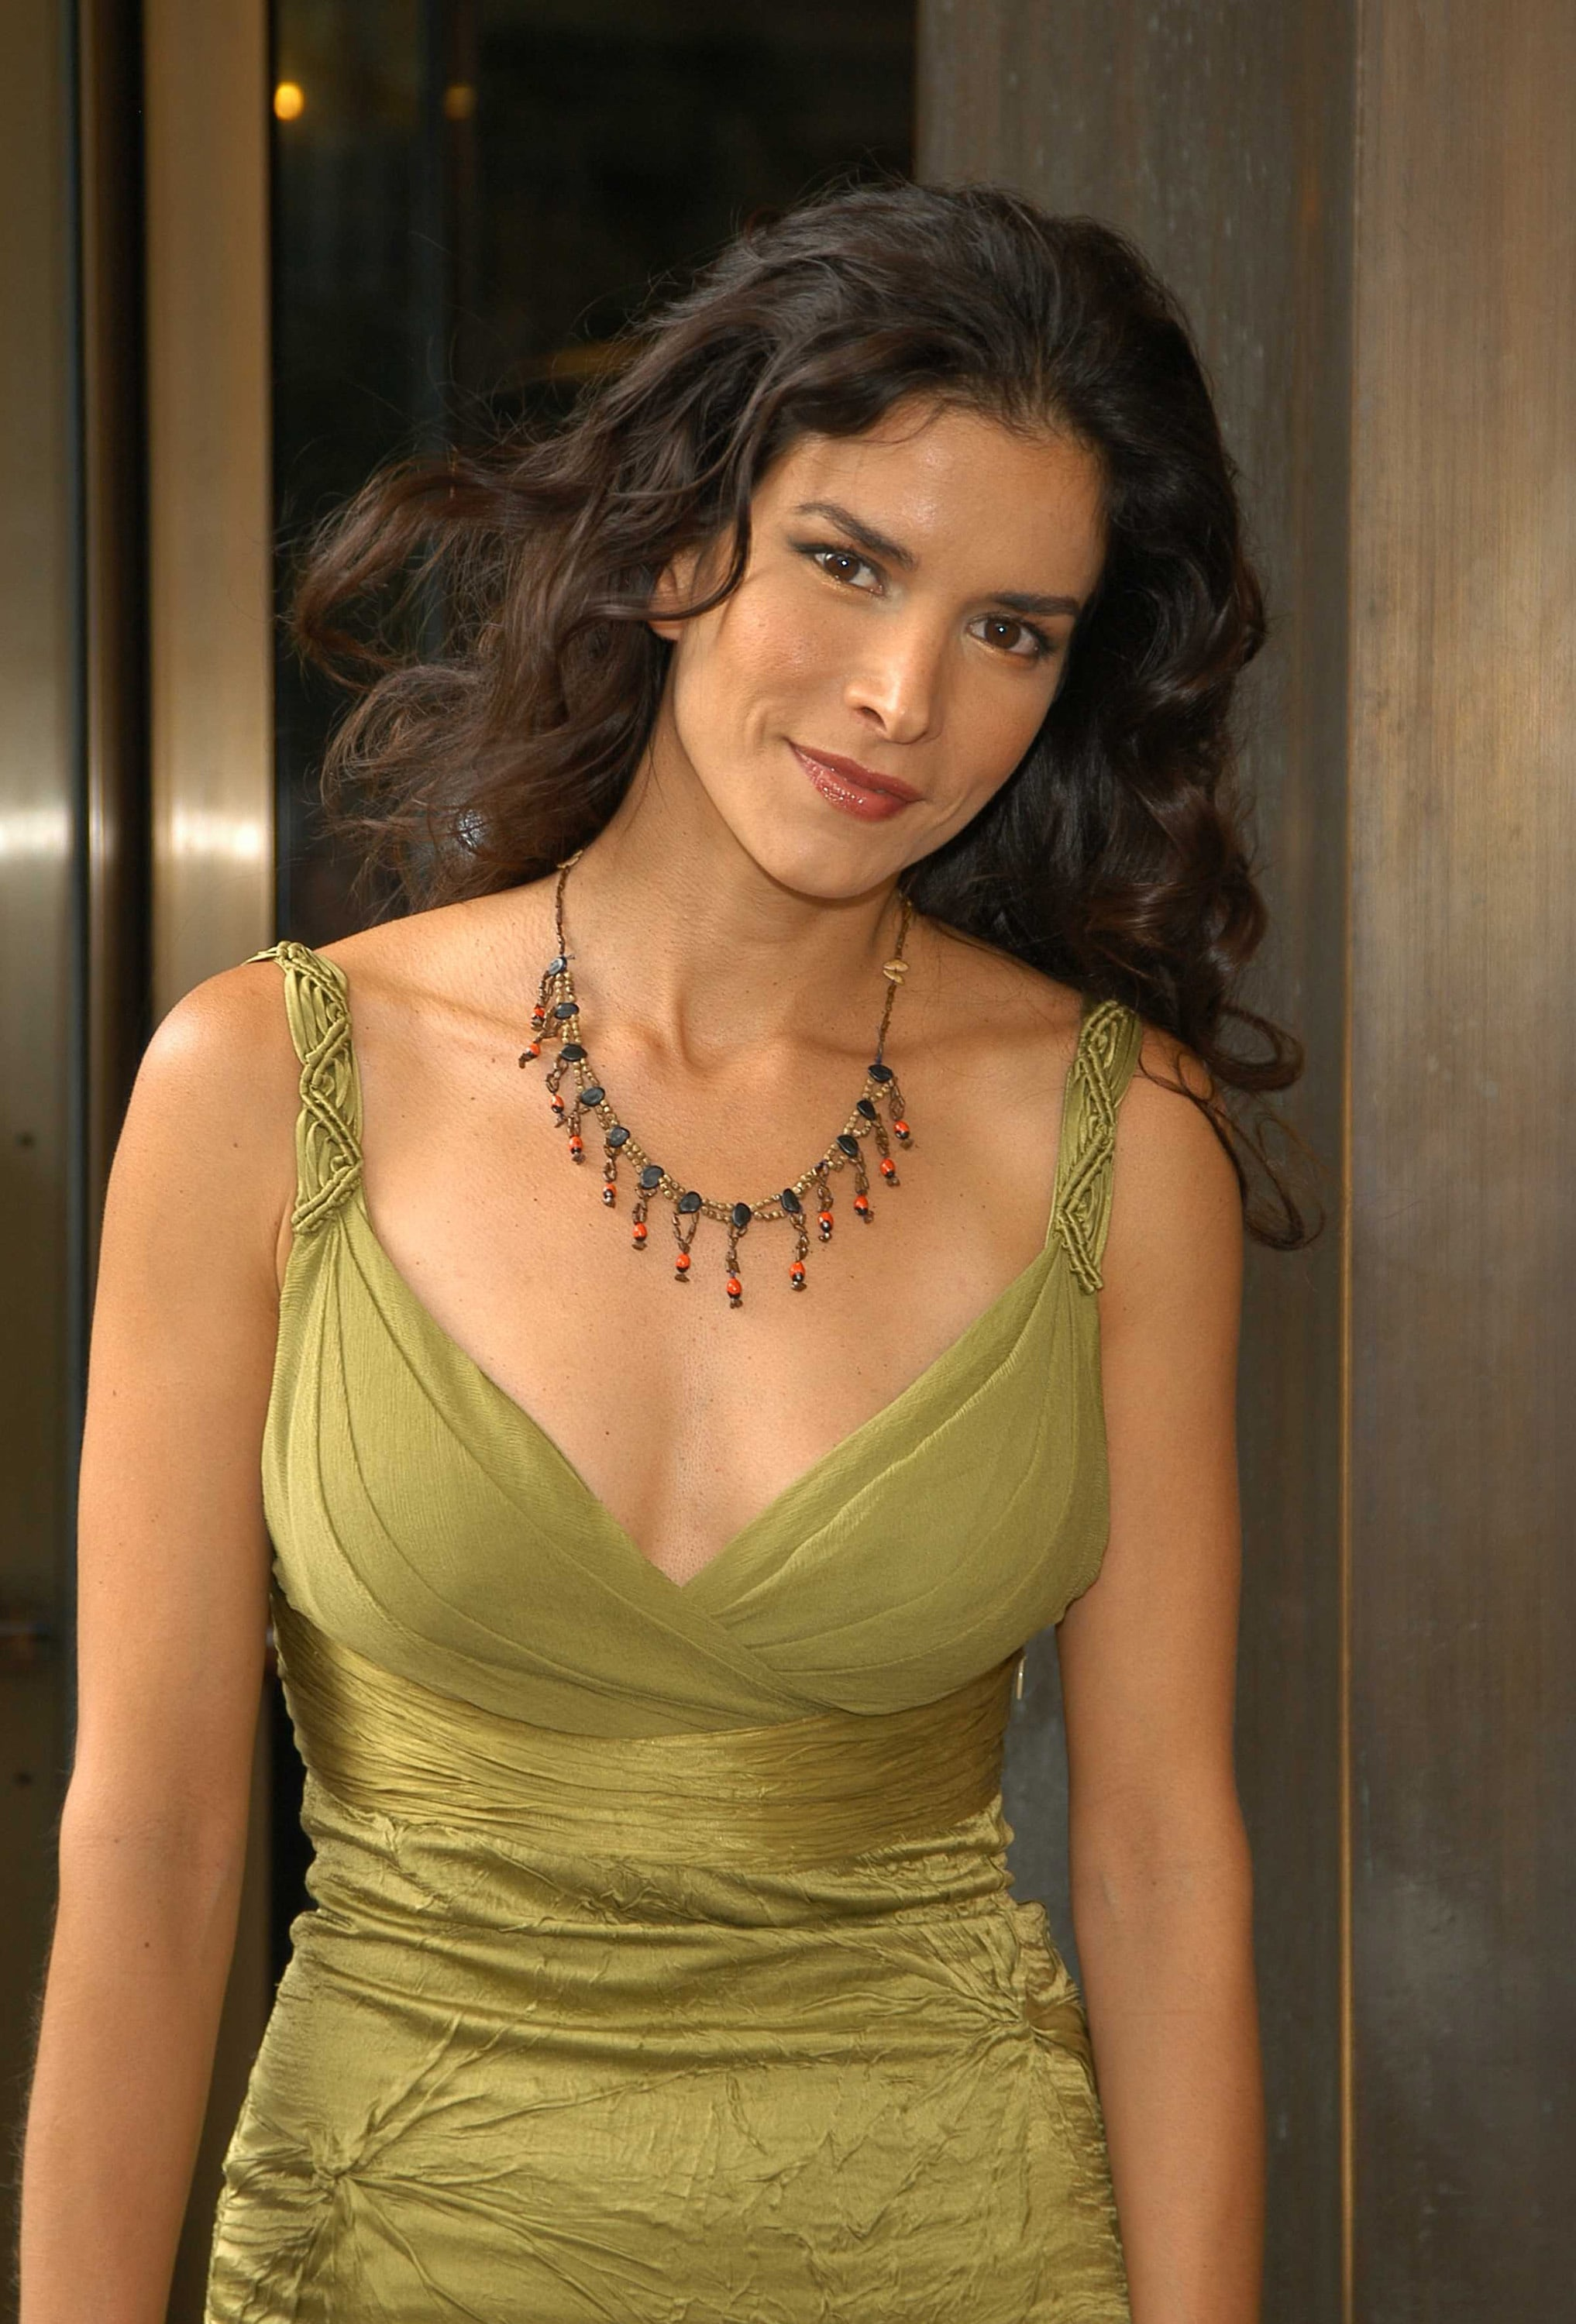 Patricia Velasquez For mobile